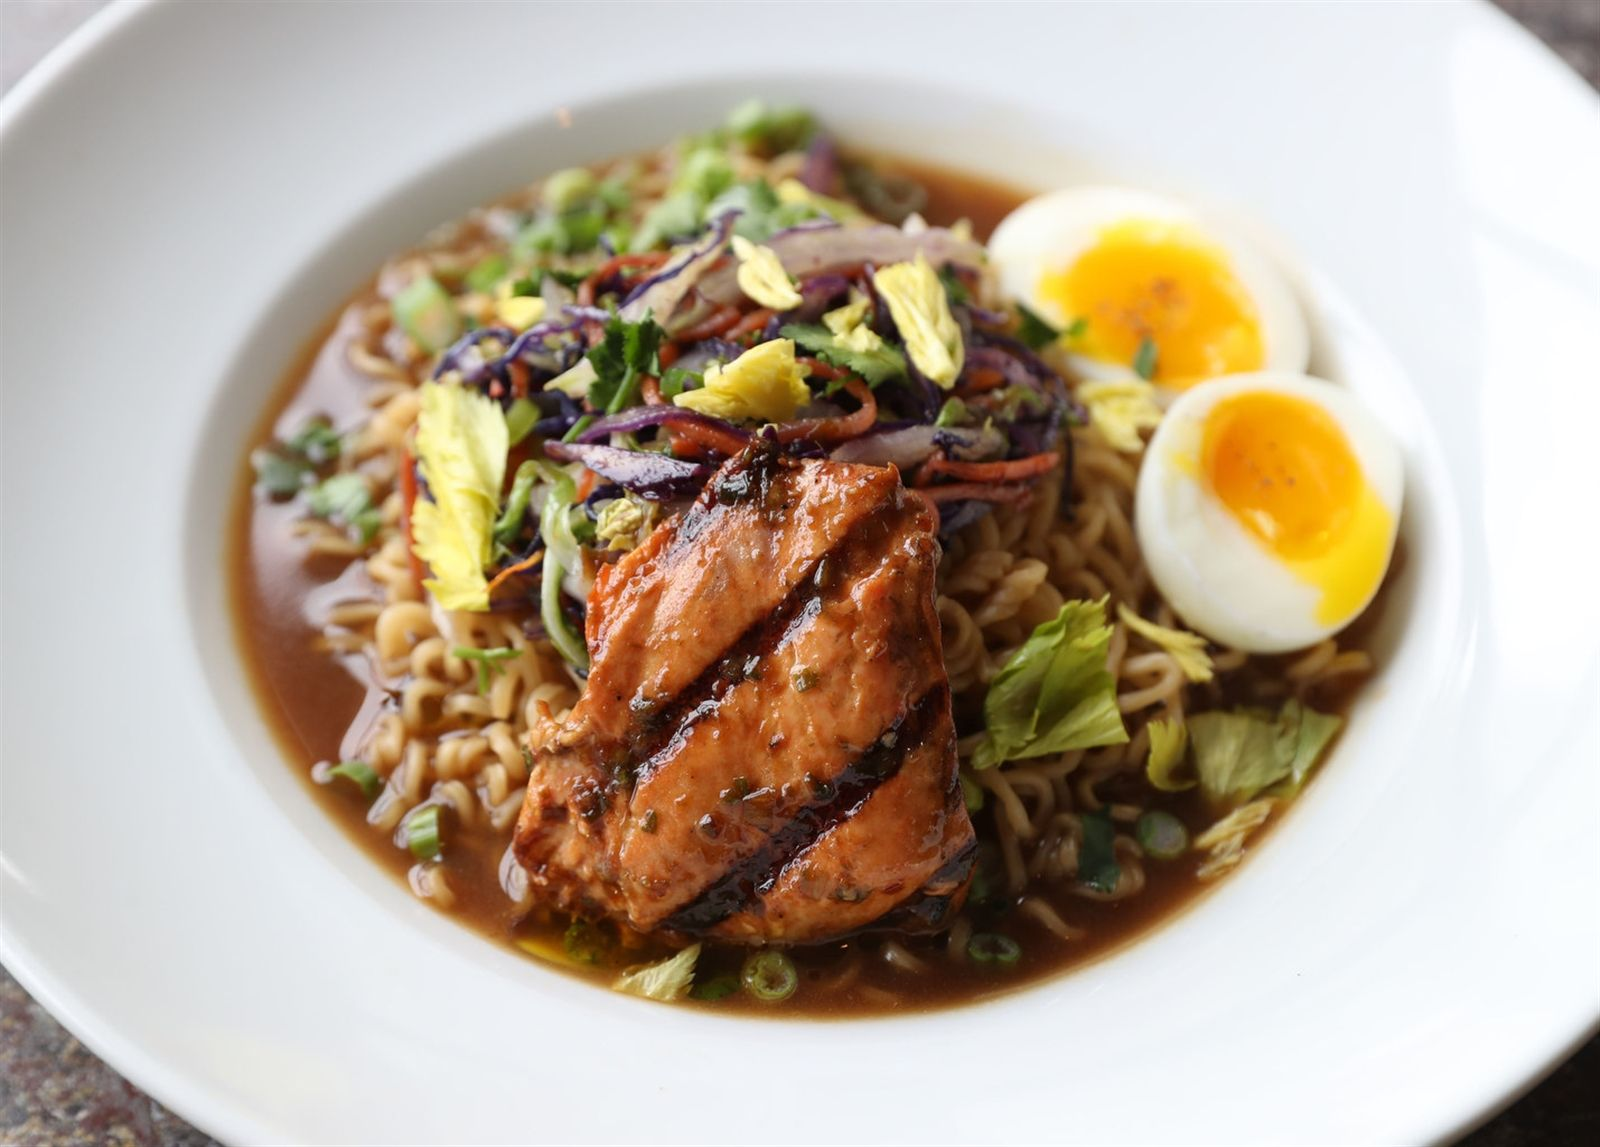 This is their ramen bowl with marinated salmon belly.